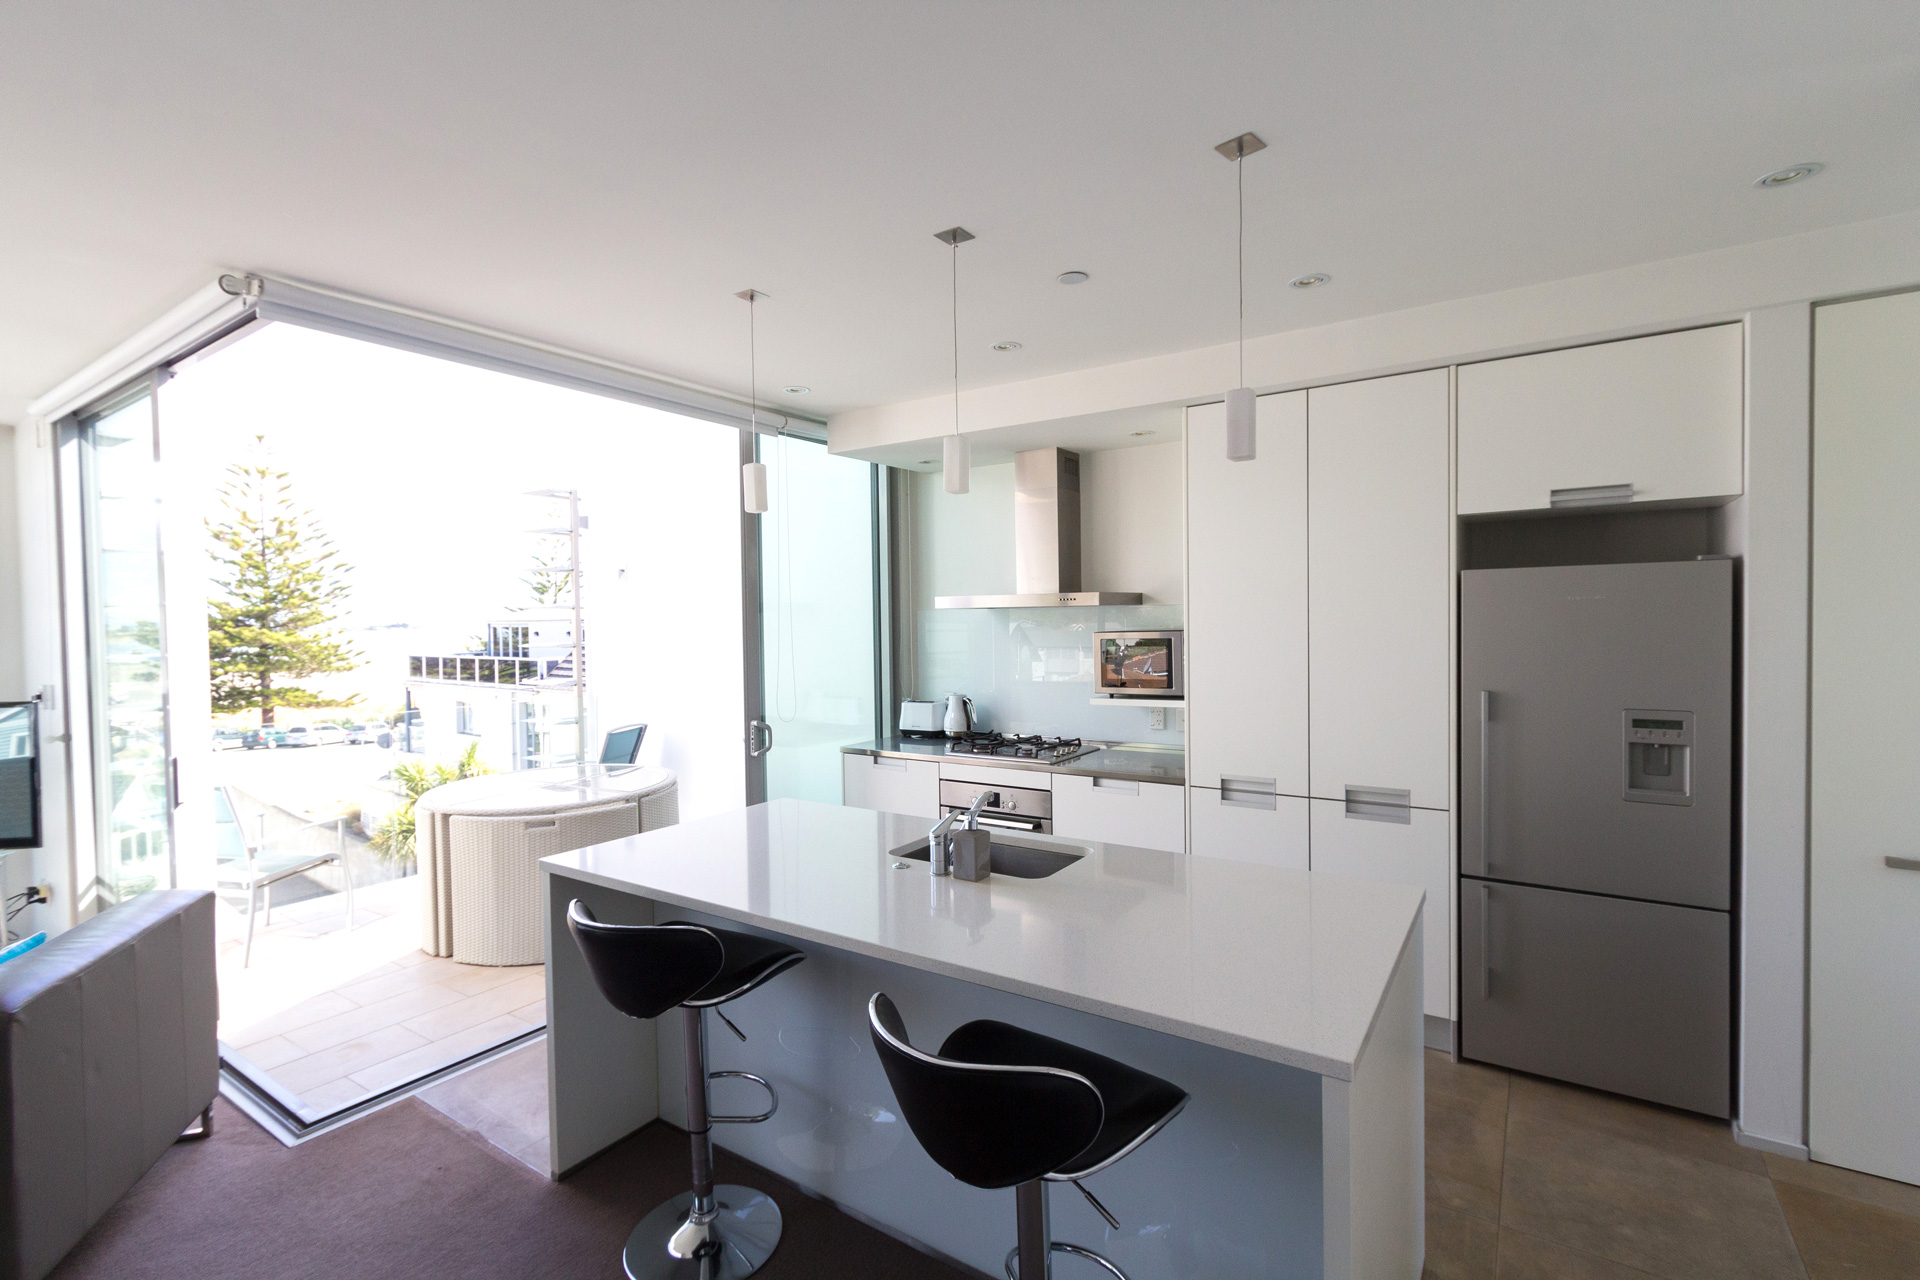 Unit 3 Kitchen Bayside Appartments Sumner Beach Christchurch